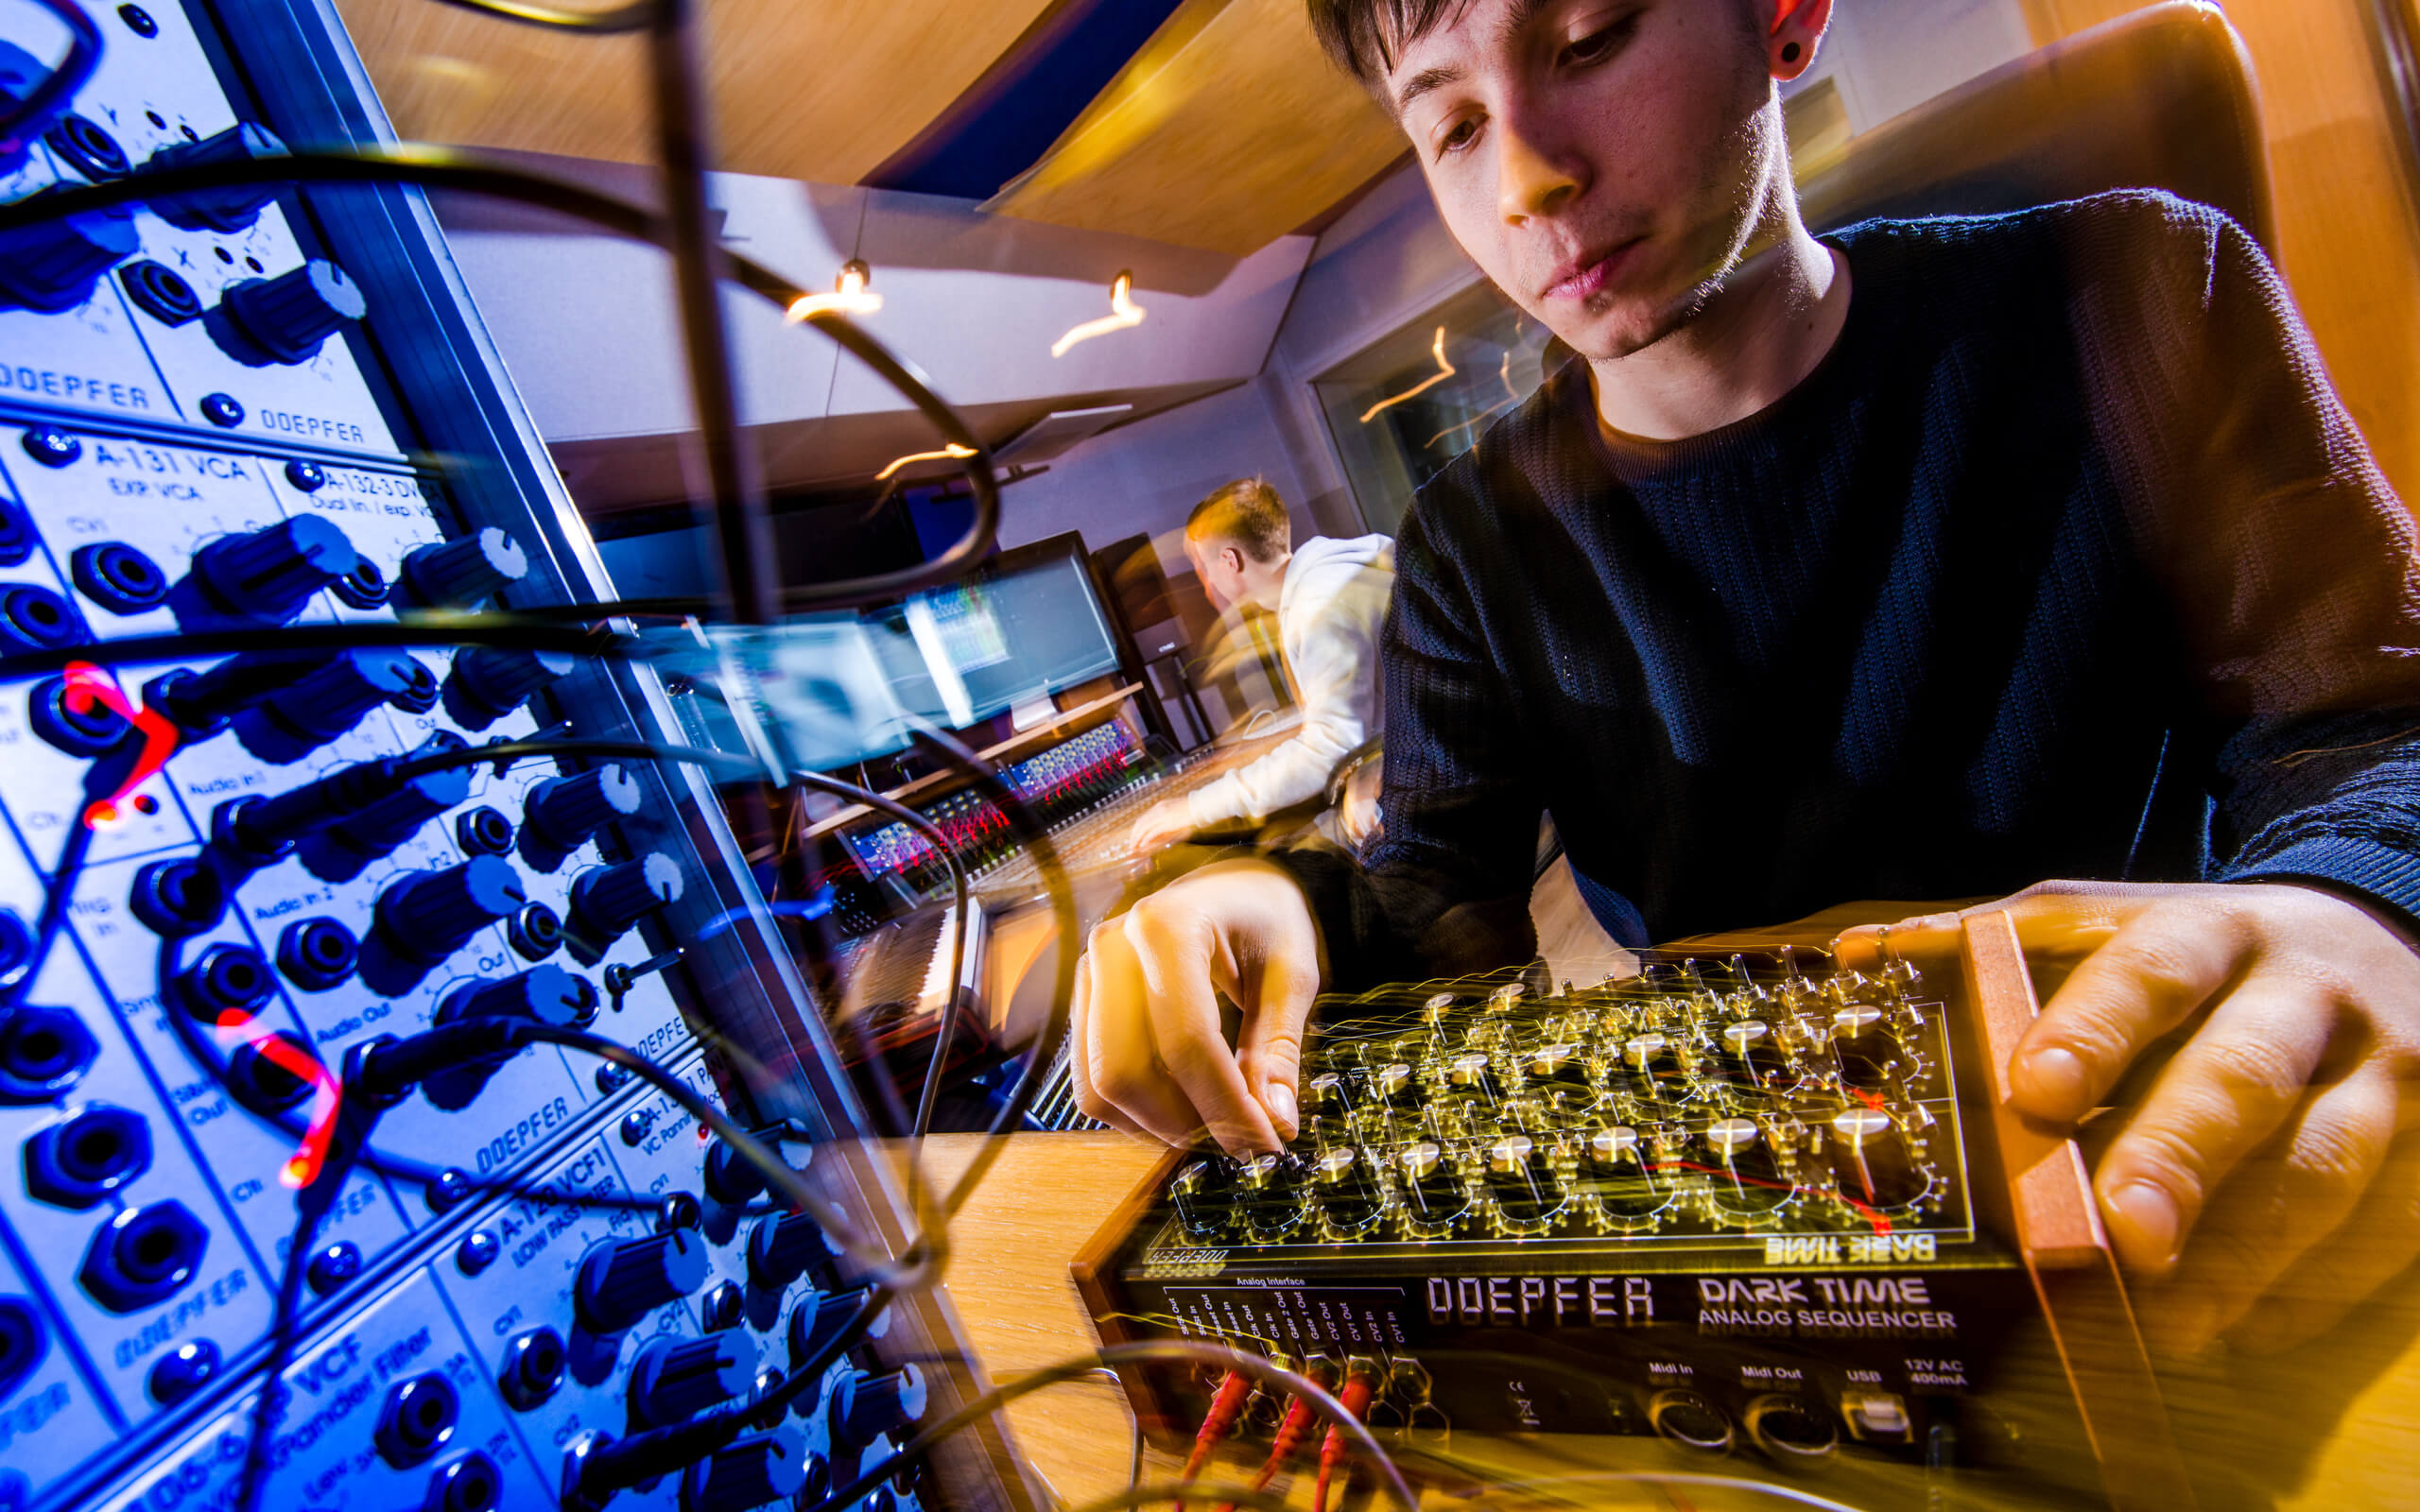 A student working in one of the music studios